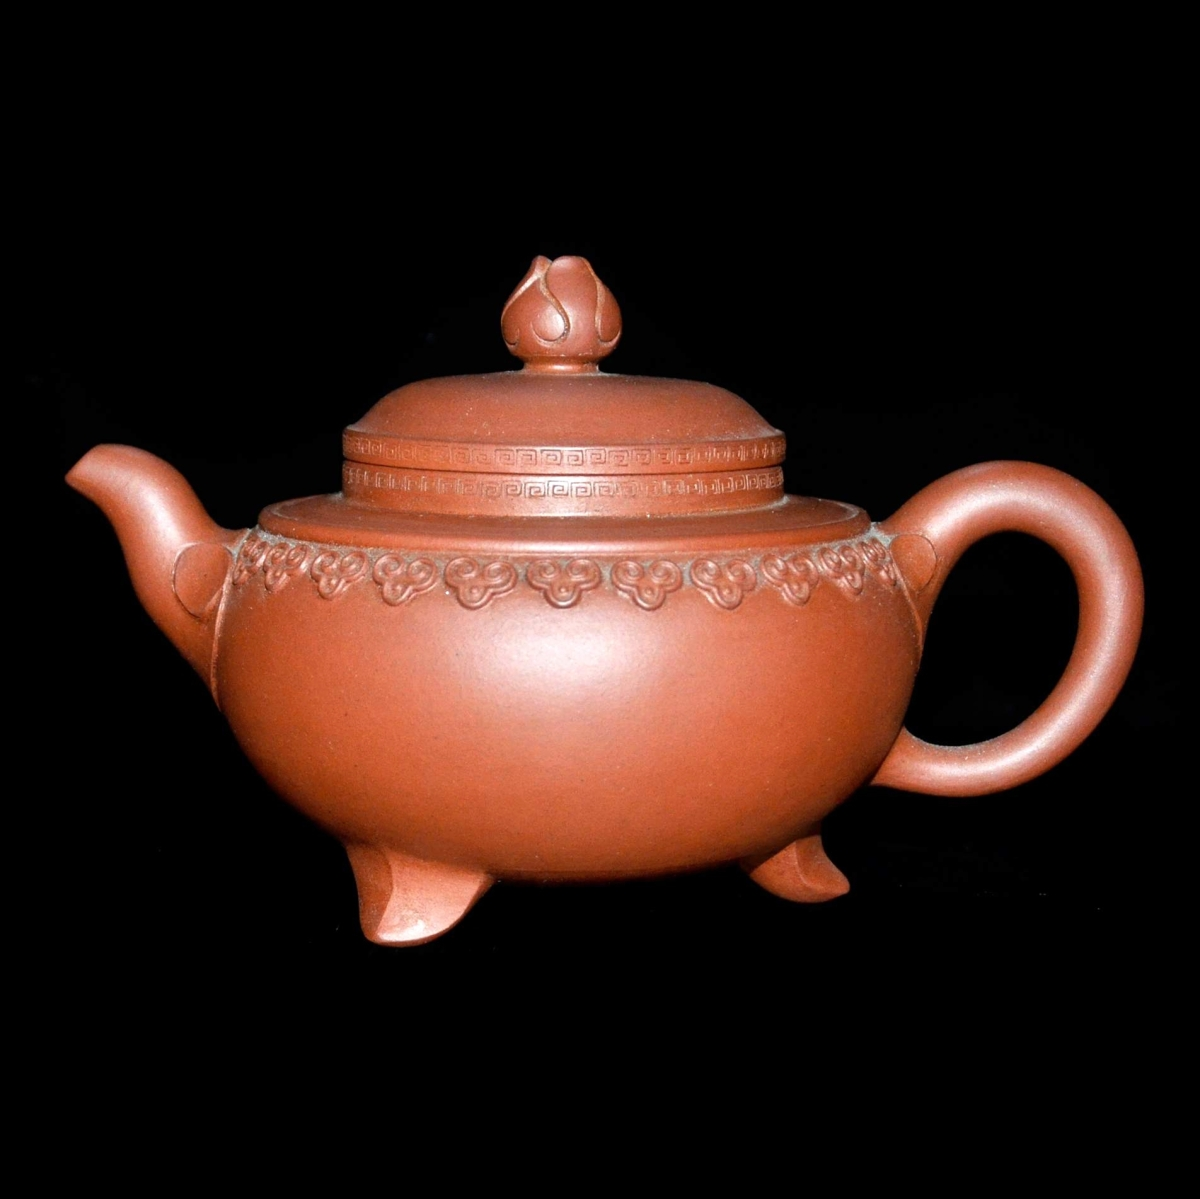 234_Gianguan Zisha teapot 7k1